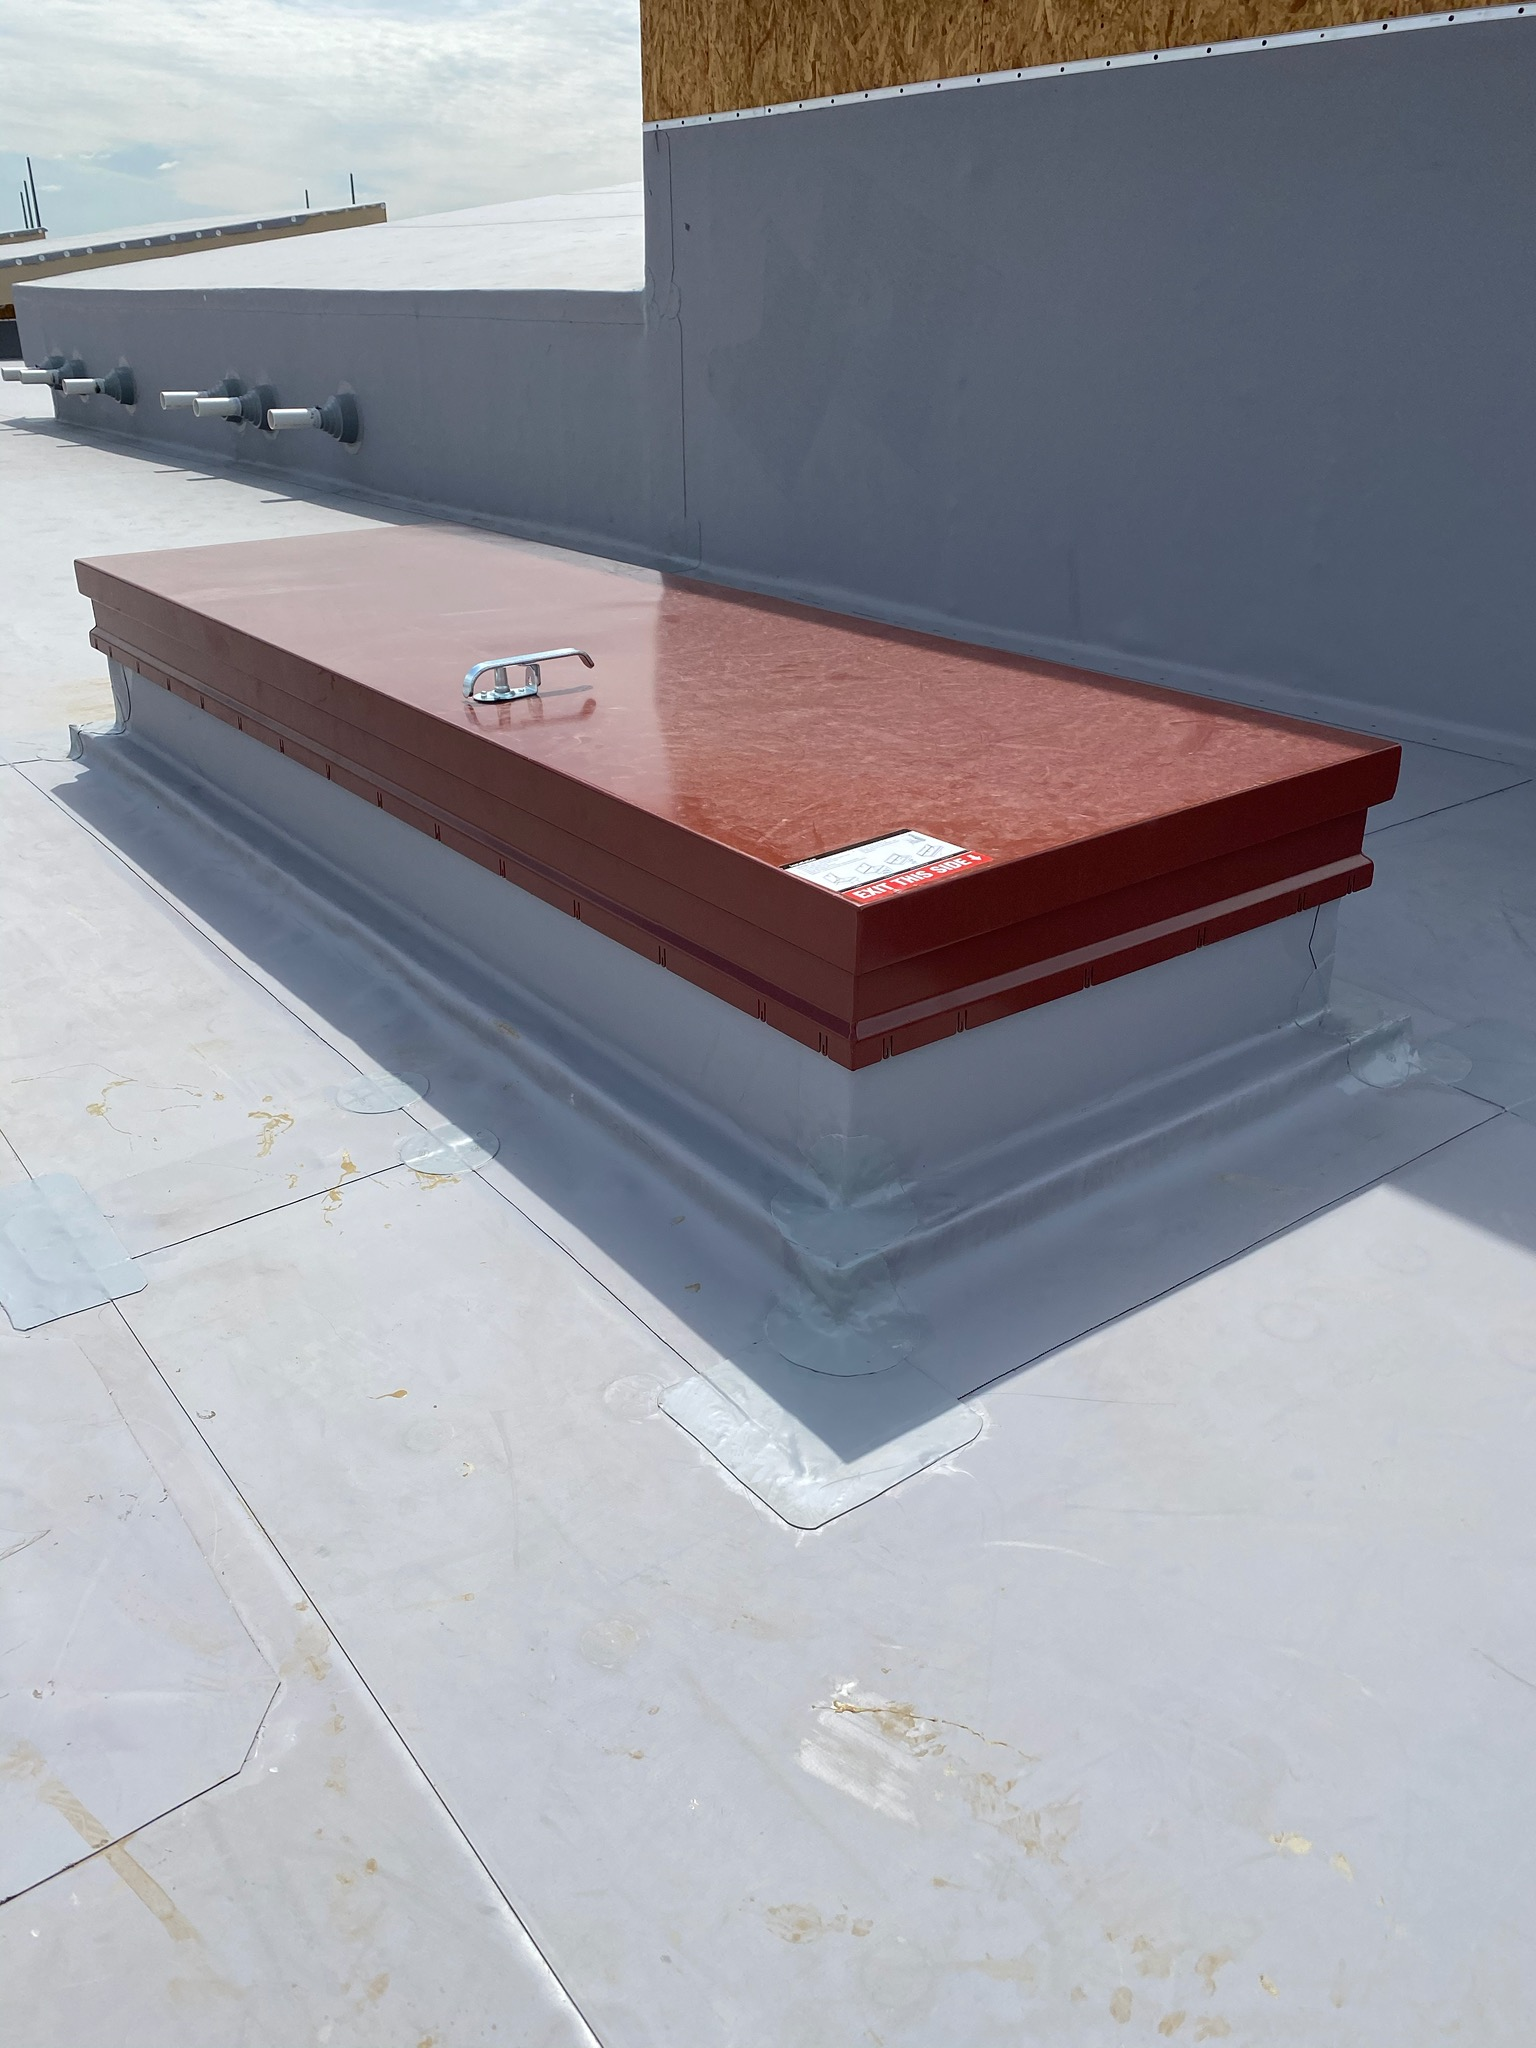 Commercial Roofing, Roof Hatch - Kansas City